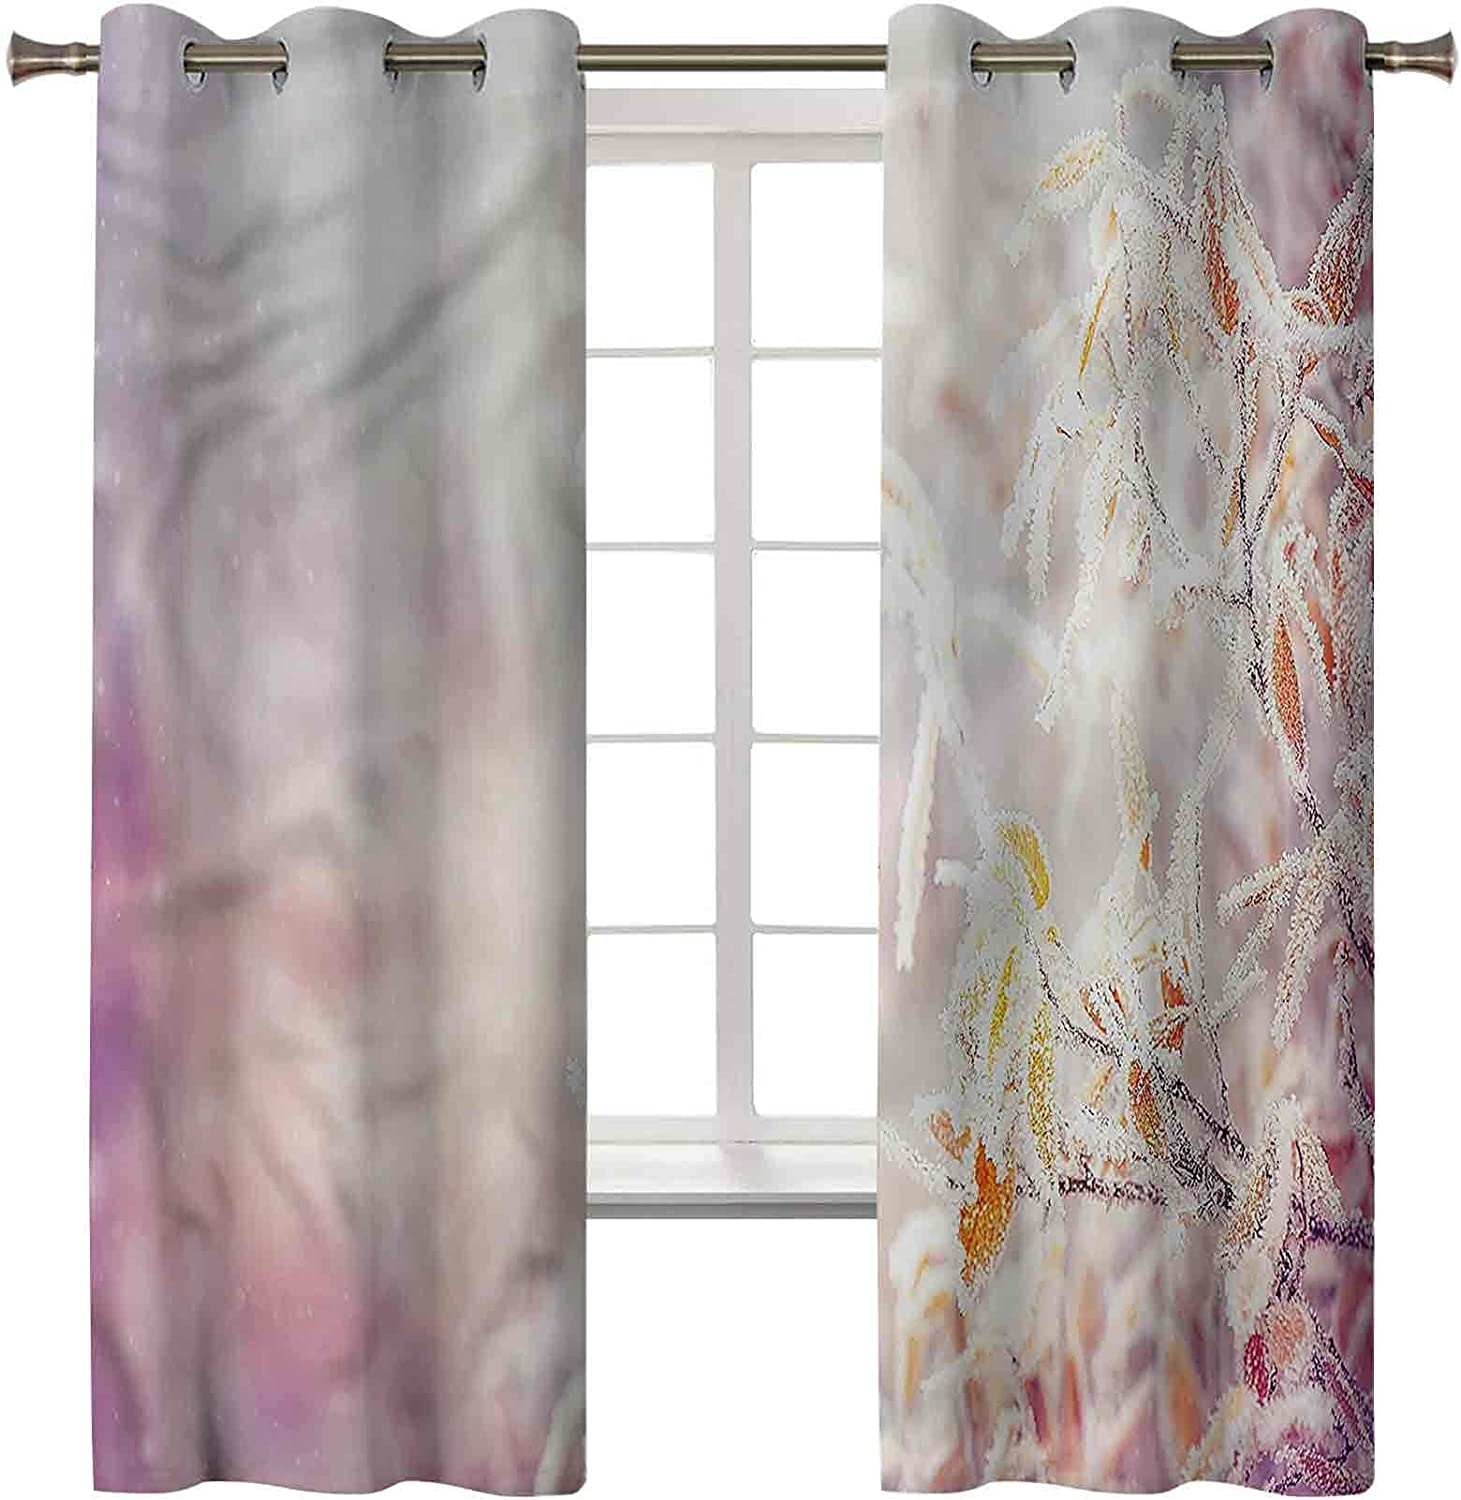 Winter Curtains for Bedroom Set of 2 Farm x 38W 45L Panels Inch Finally resale Cheap mail order shopping start